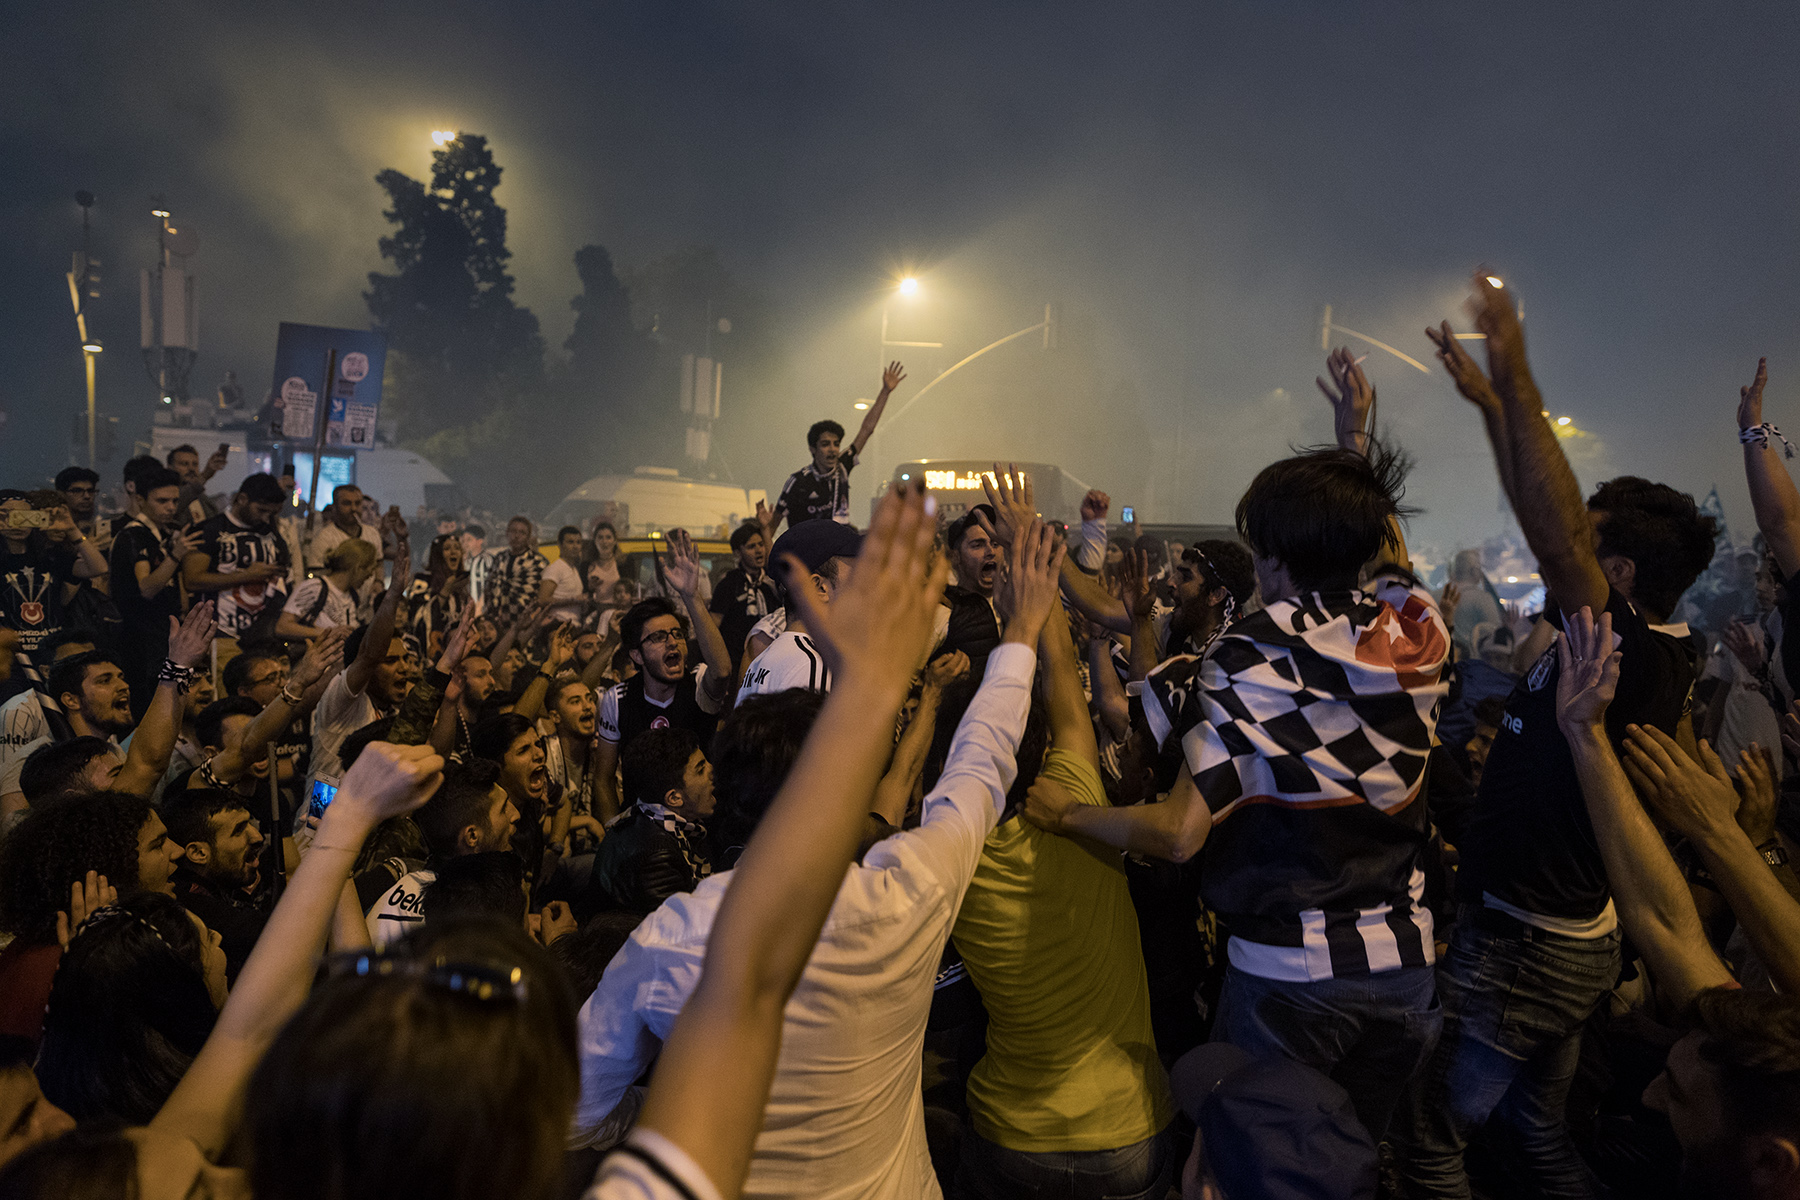 Supporters block traffic in Besiktas district as they celebrate the Turkish Super League title after the last match of the season against Osmanlispor in Istanbul, Turkey, Saturday, June 3, 2017.